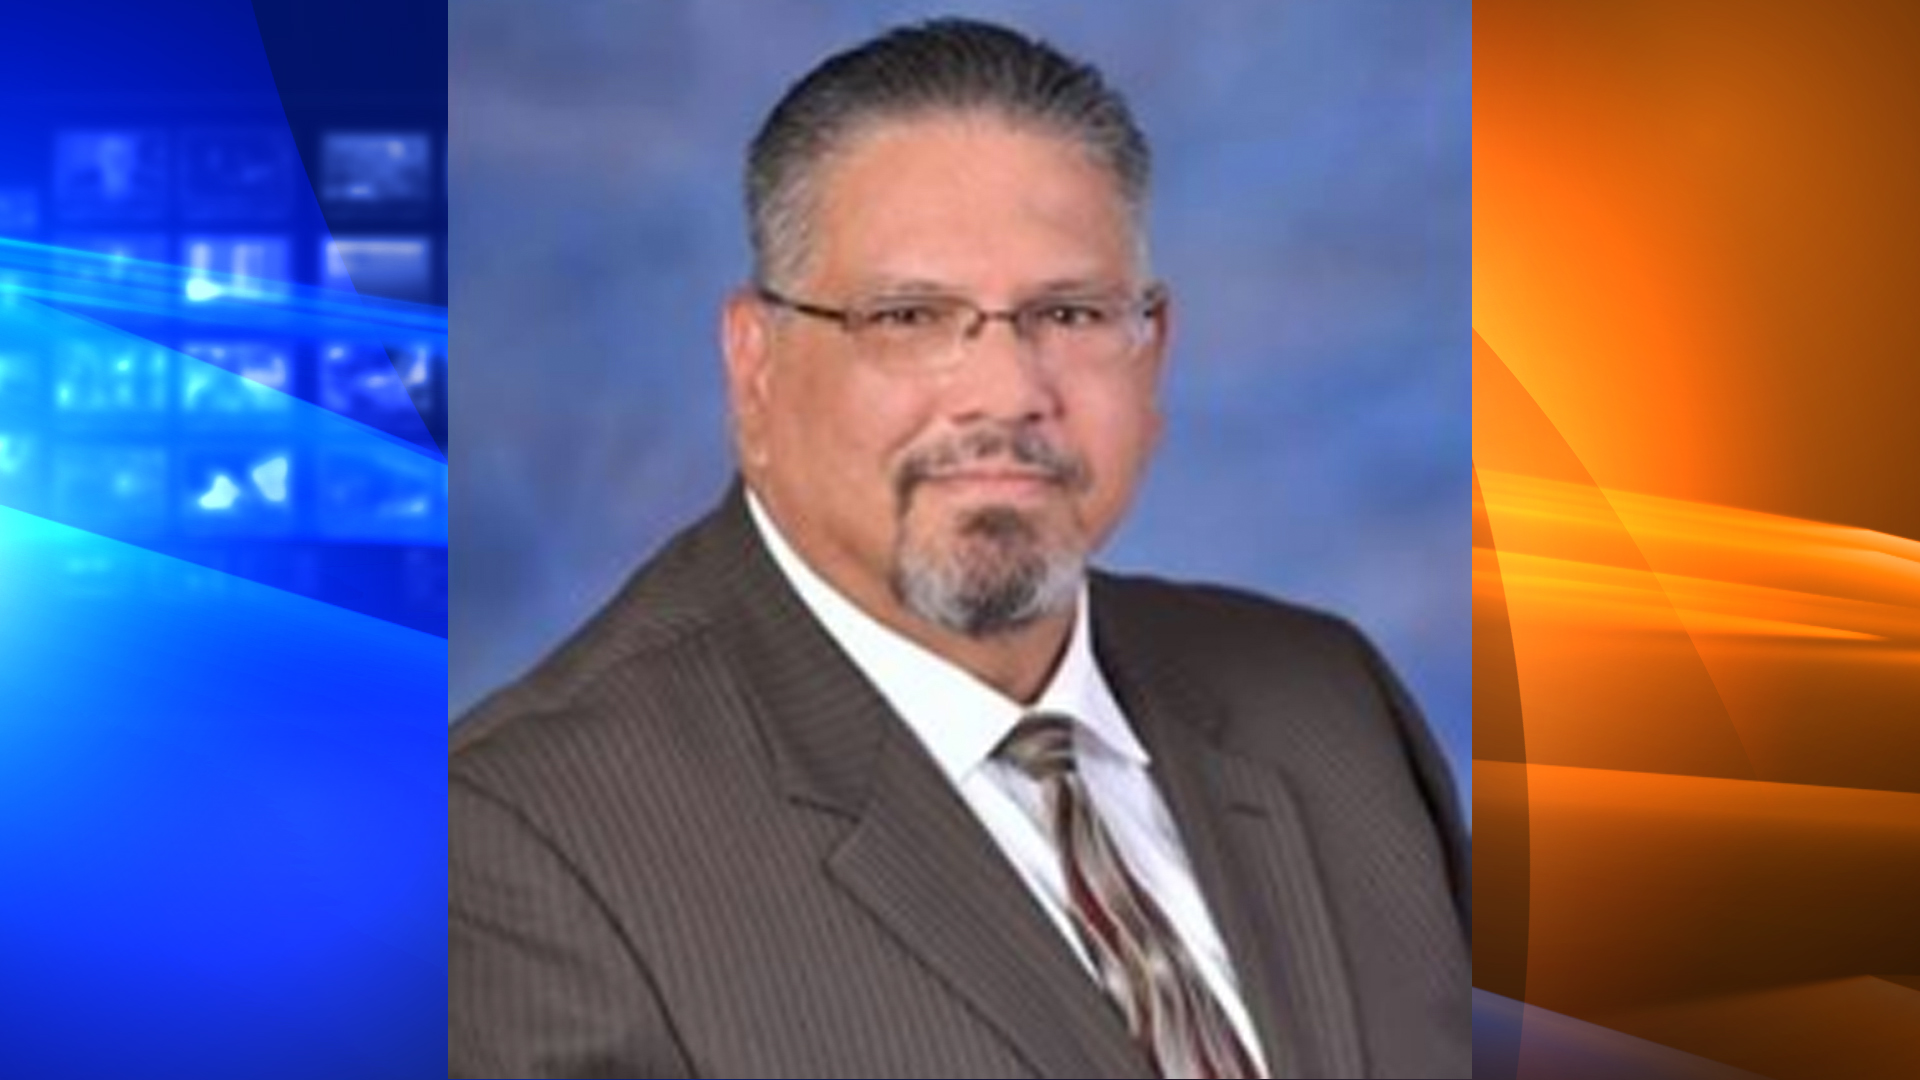 Bakersfield police released this photo of McFarland City Manager John Wooner.